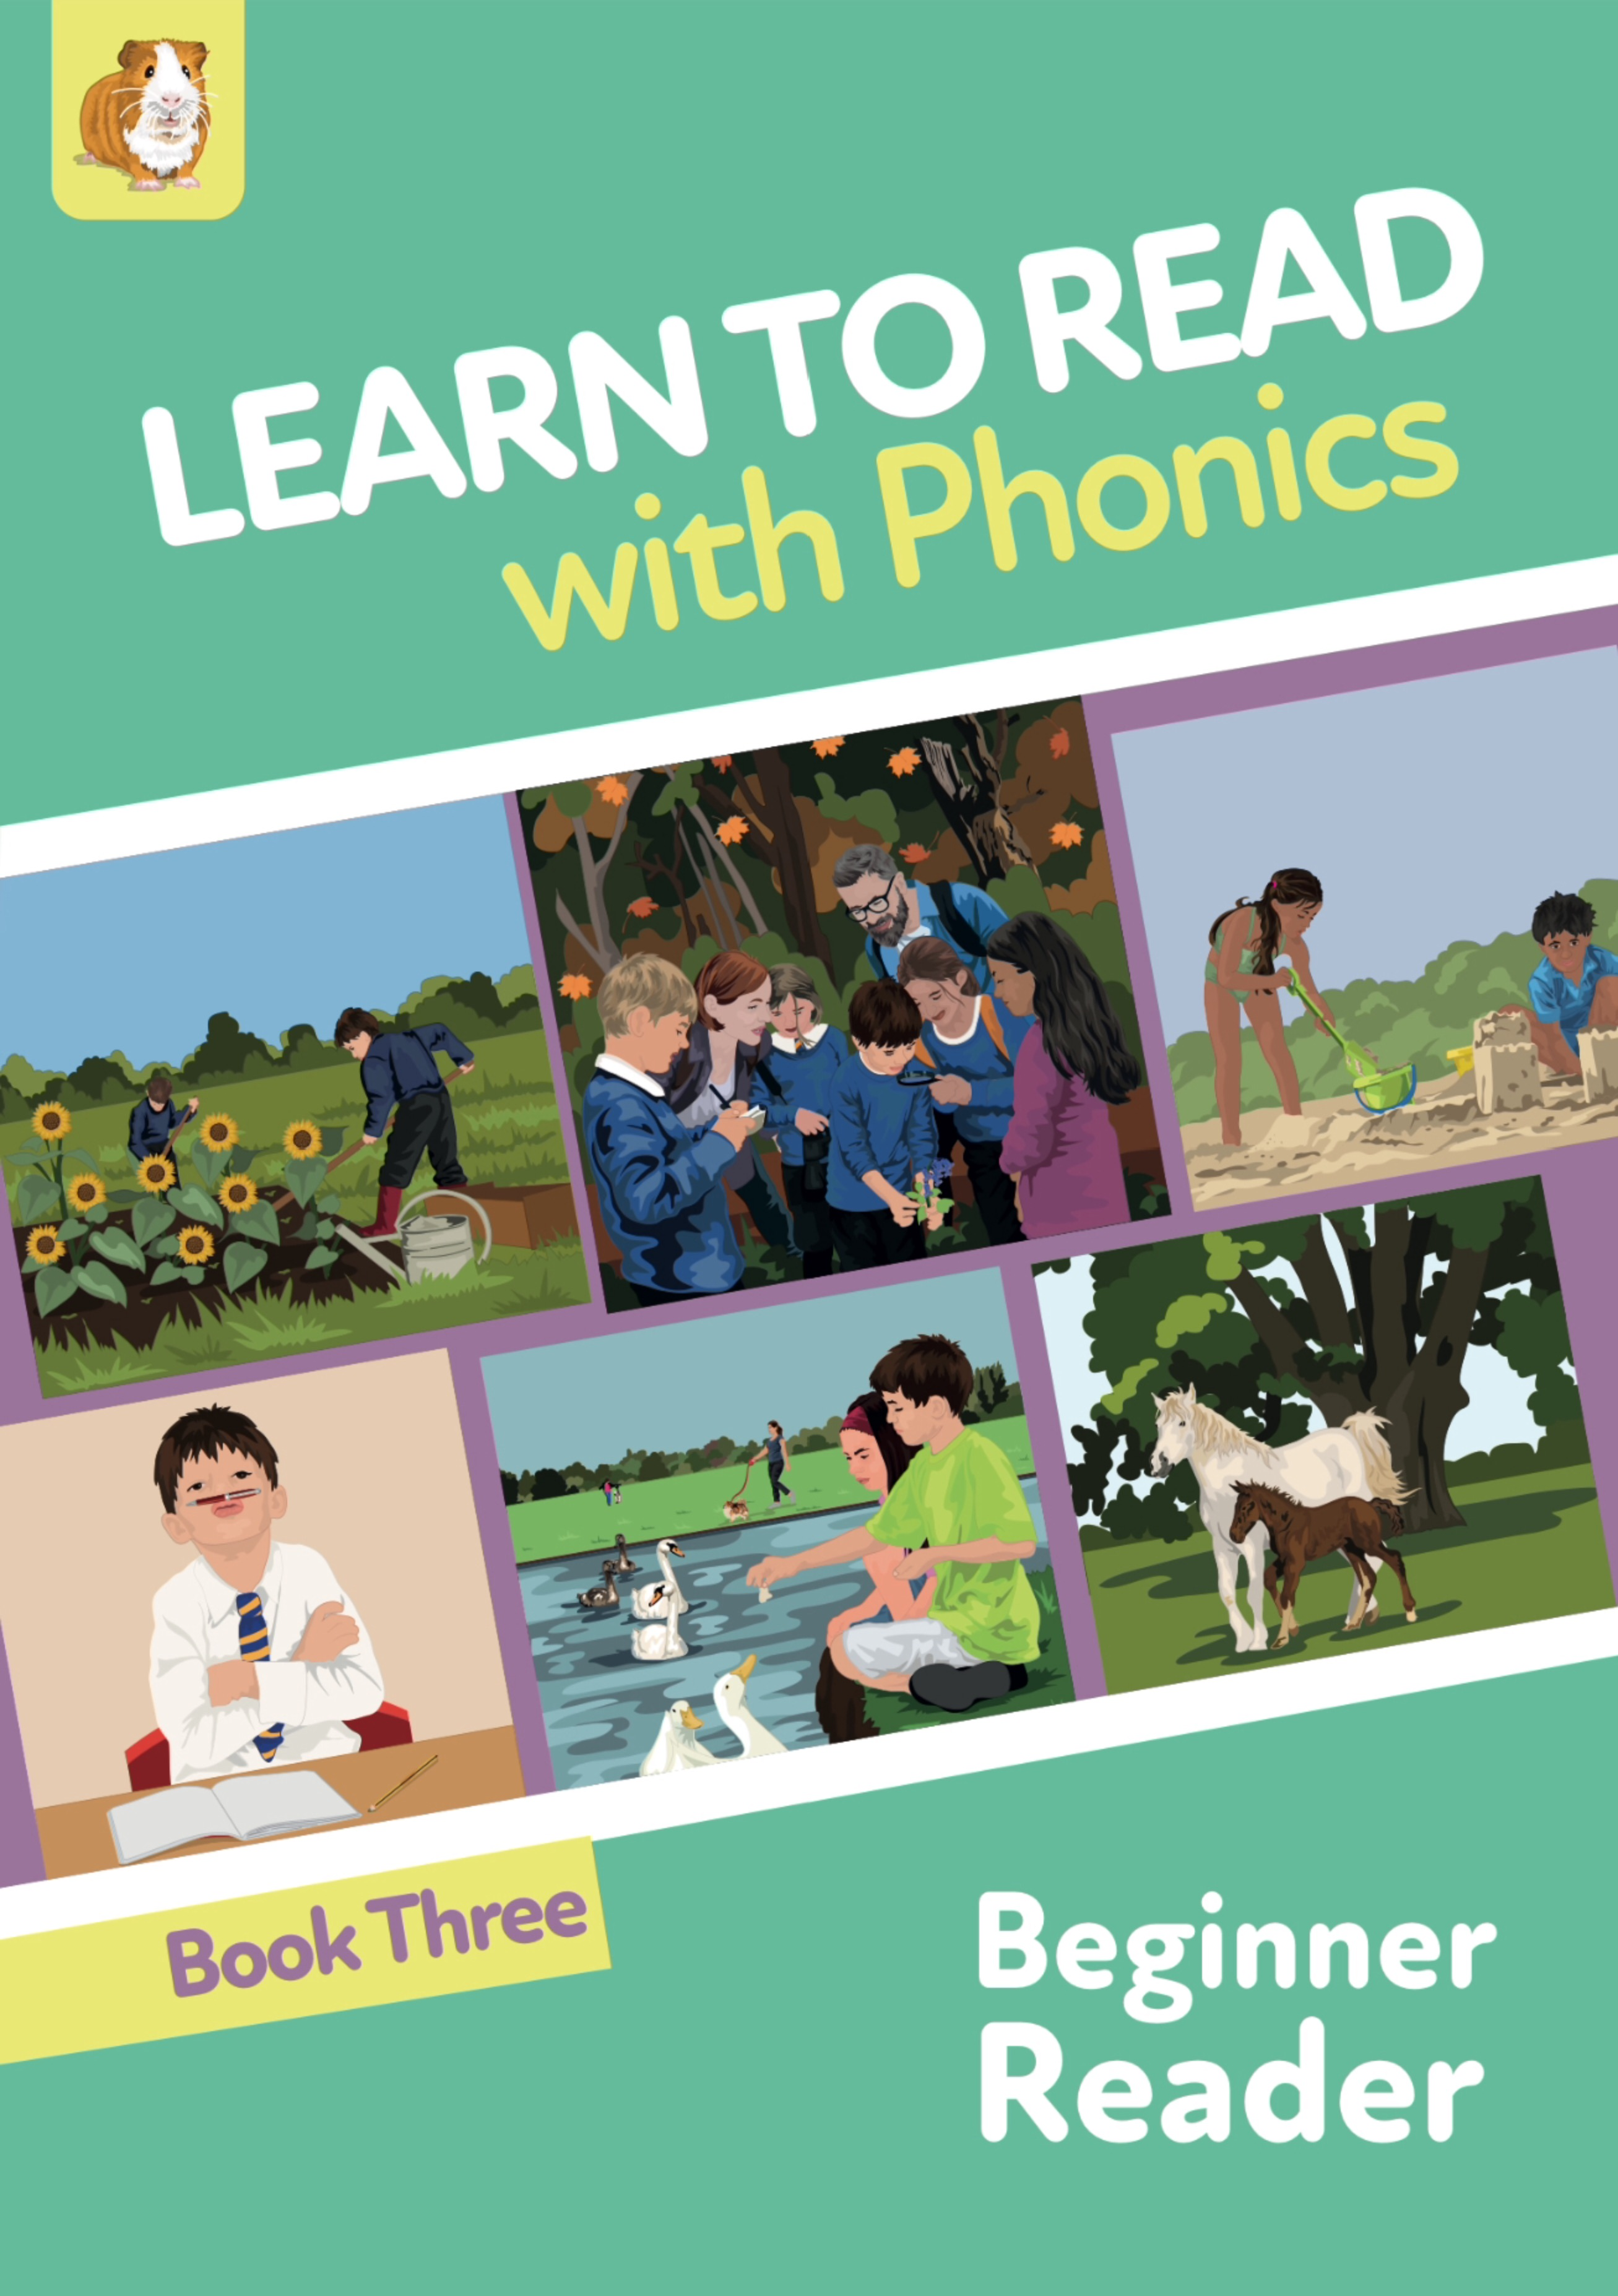 Learn To Read Rapidly With Phonics: Beginner Reader Book 3: Digital Download